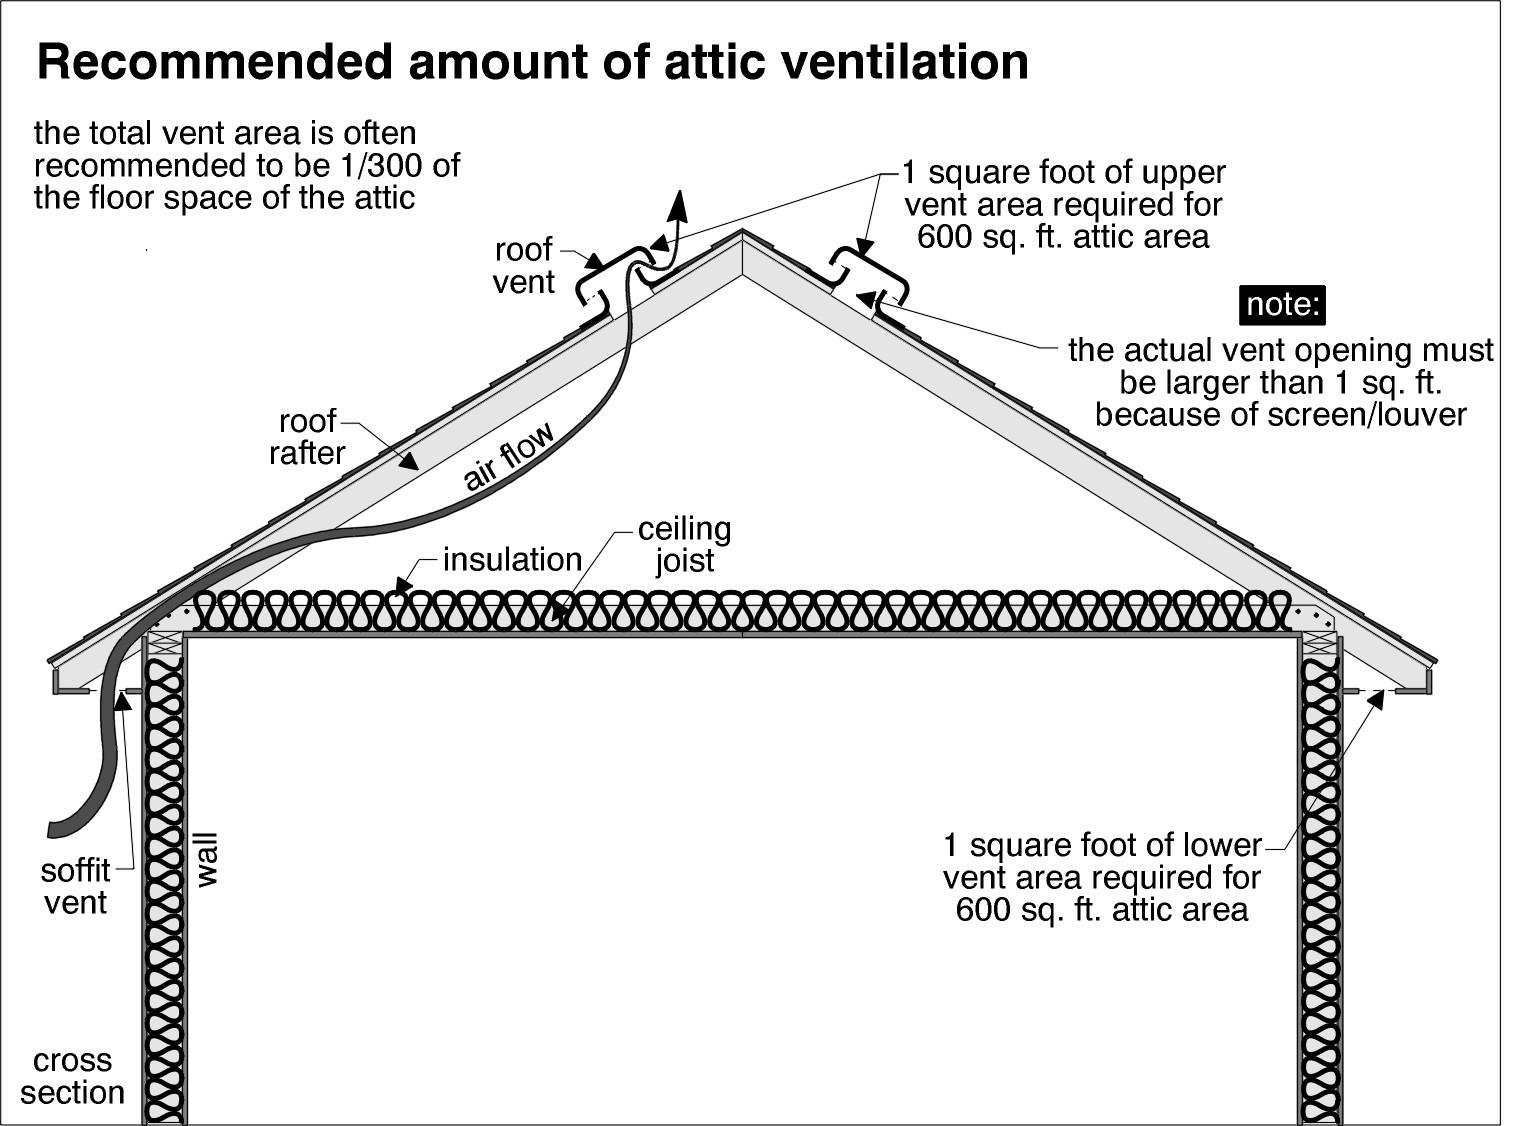 Attic Ventilation Roof Vents : Attic ventilation contractor northern va md dc fairfax